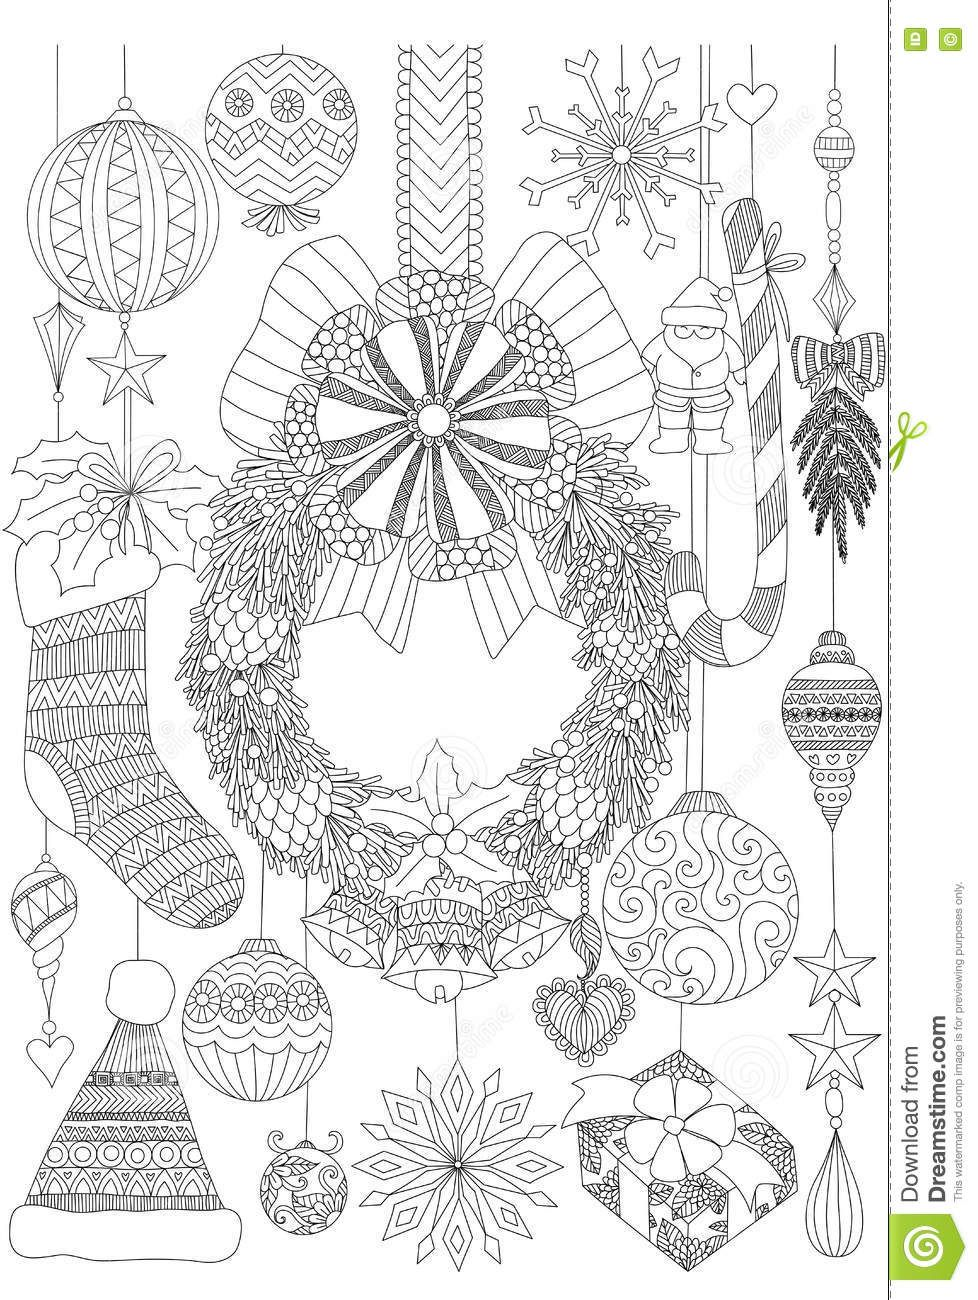 Coloring book pages for christmas - Doodles About Christmas Decorative Stuffs For Adult Coloring Book Pages And Christmas Card Invitation Stock Vector